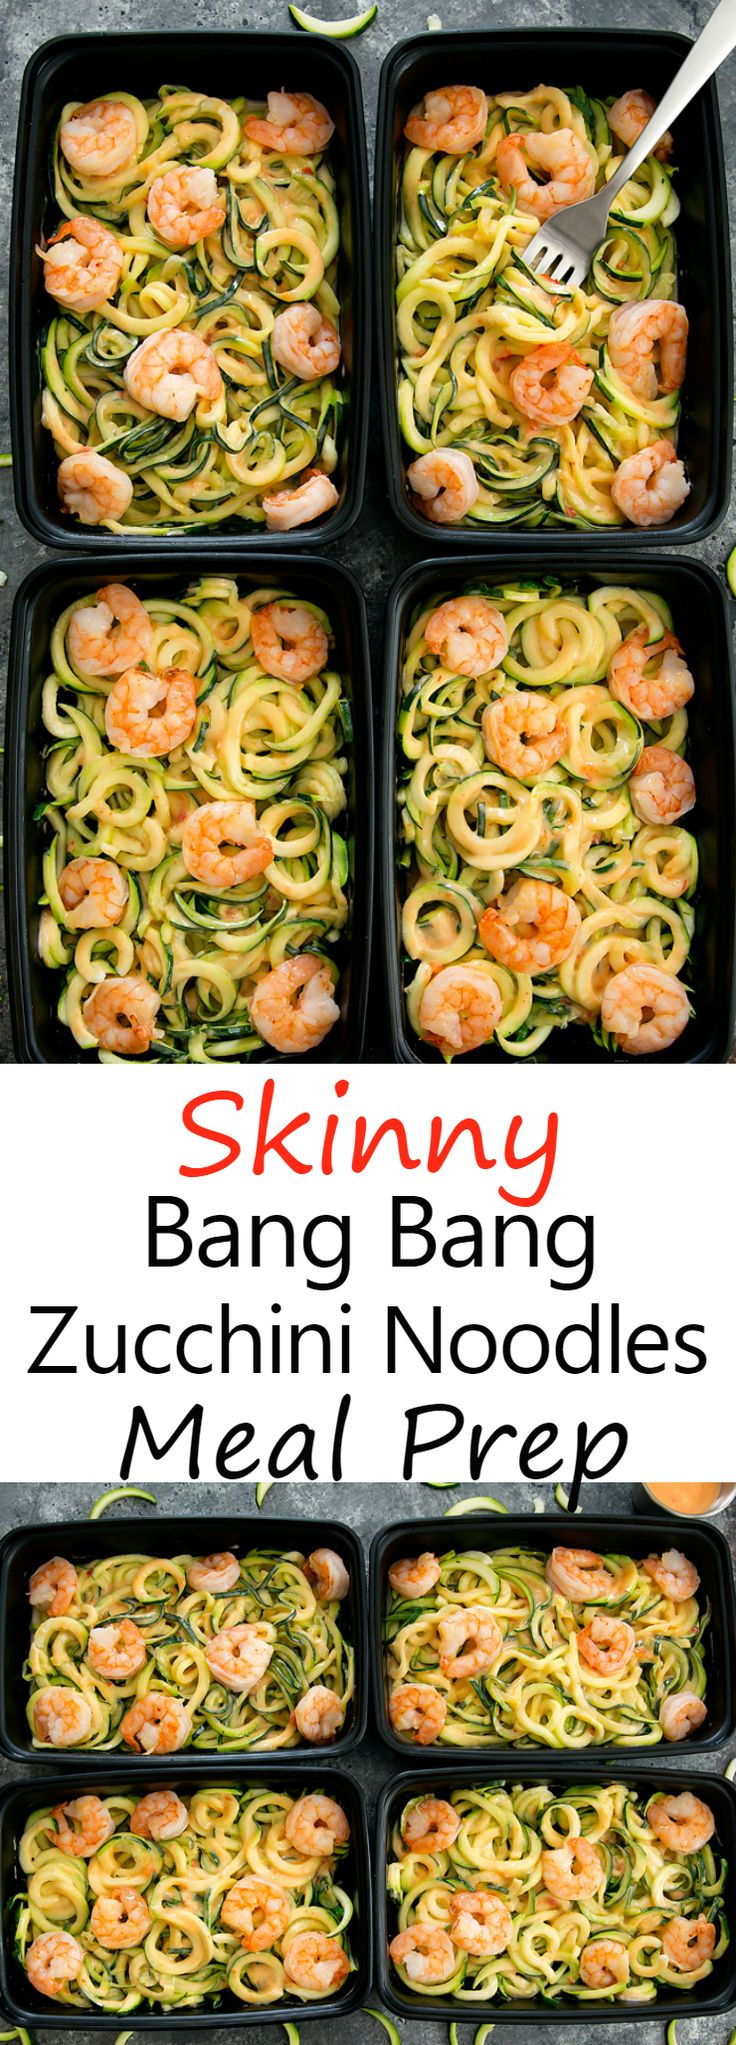 Skinny Bang Bang Zucchini Noodles Meal Prep. An easy, lightened up version of bang bang pasta that can be made ahead of time for multiple meals during the week.